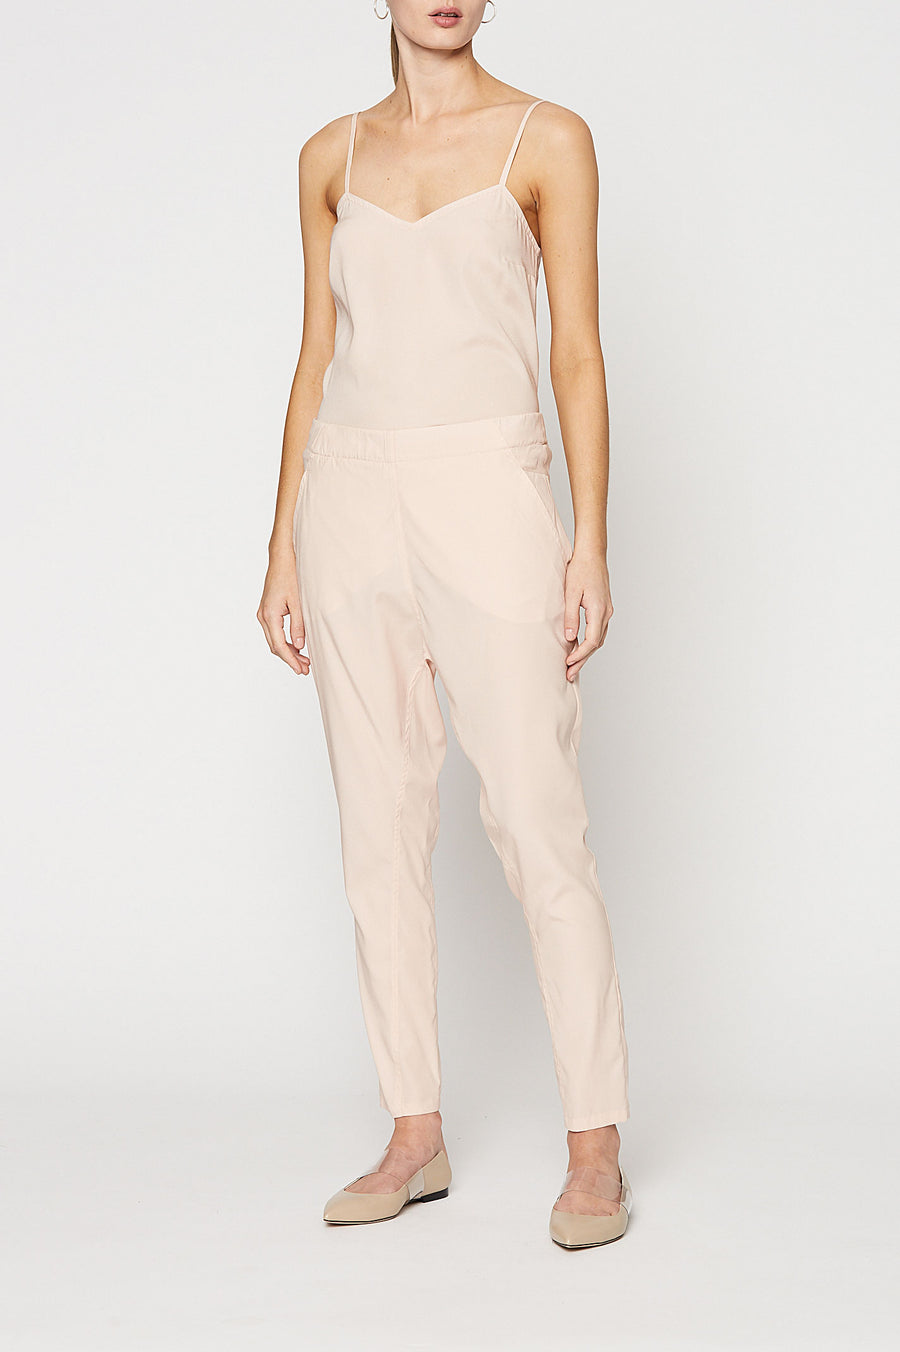 Silk Low Rise Boyfriend Pant, relaxed fit, incased elastic waist, dropped crotch, slanted pockets, Color Pale Pink